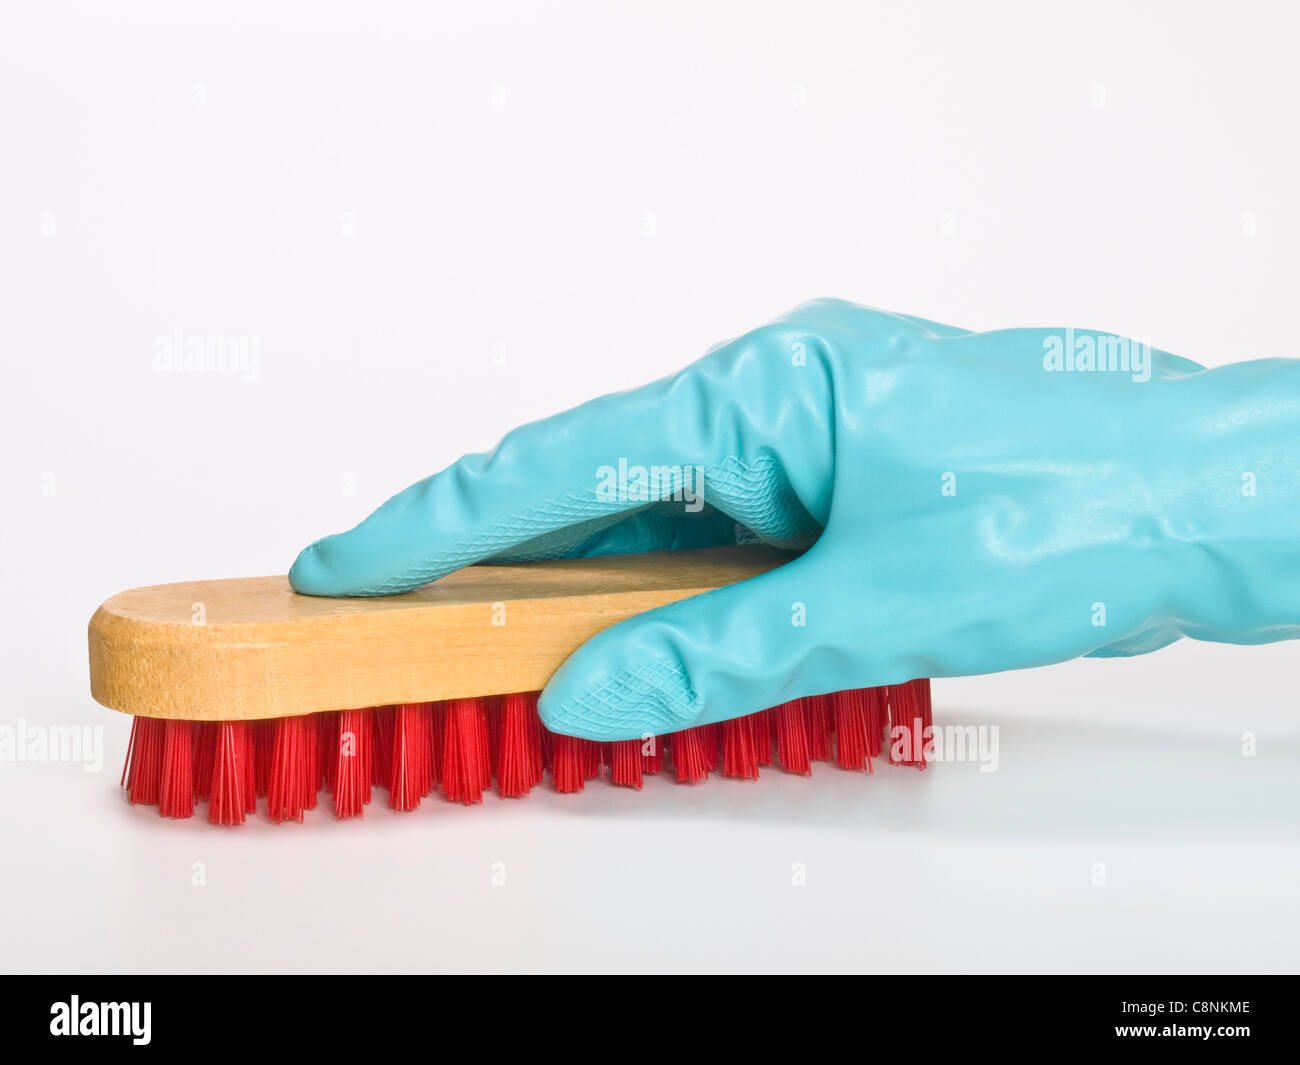 Synthetic Rubber Stock Photos Amp Synthetic Rubber Stock